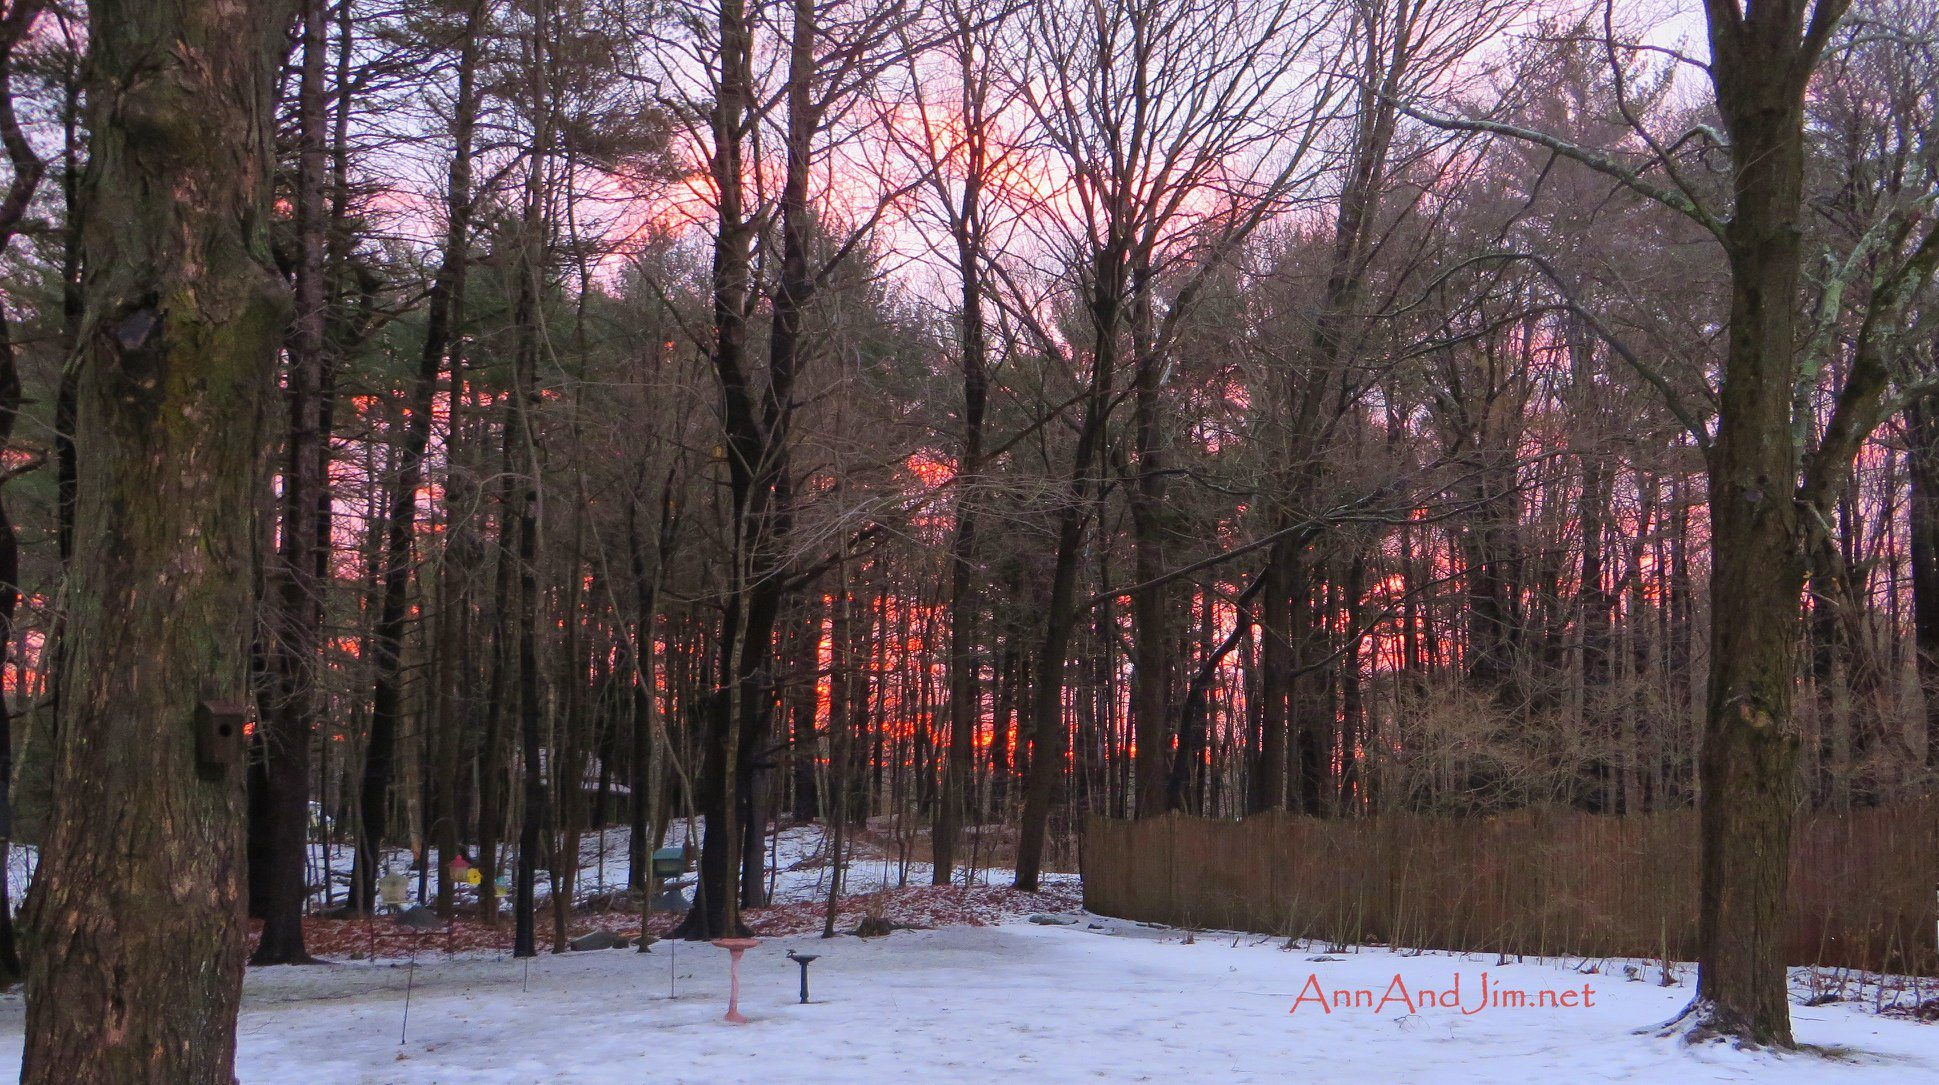 Sunrise and Sunset in NH